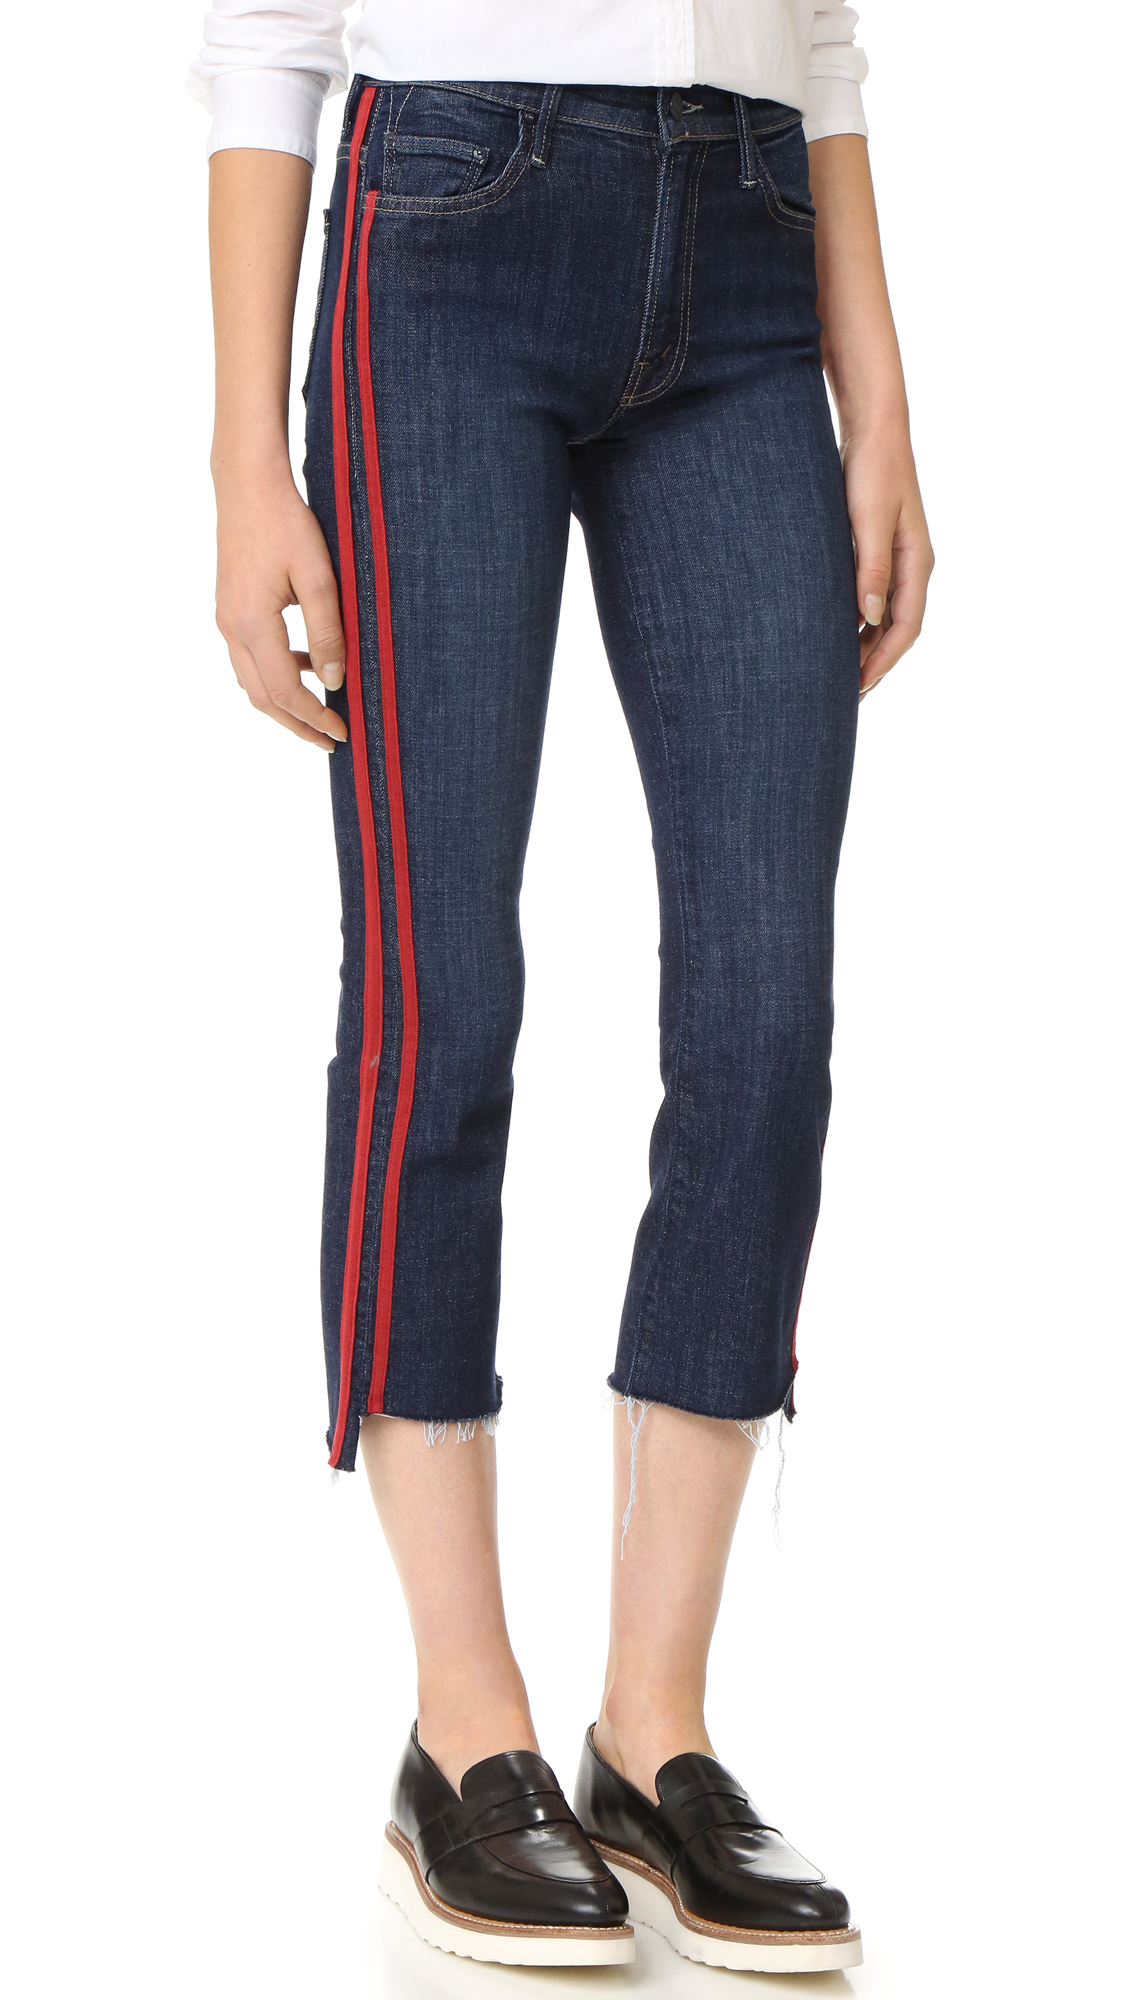 MOTHER The Insider Crop Step Fray Jeans - Speed Racer